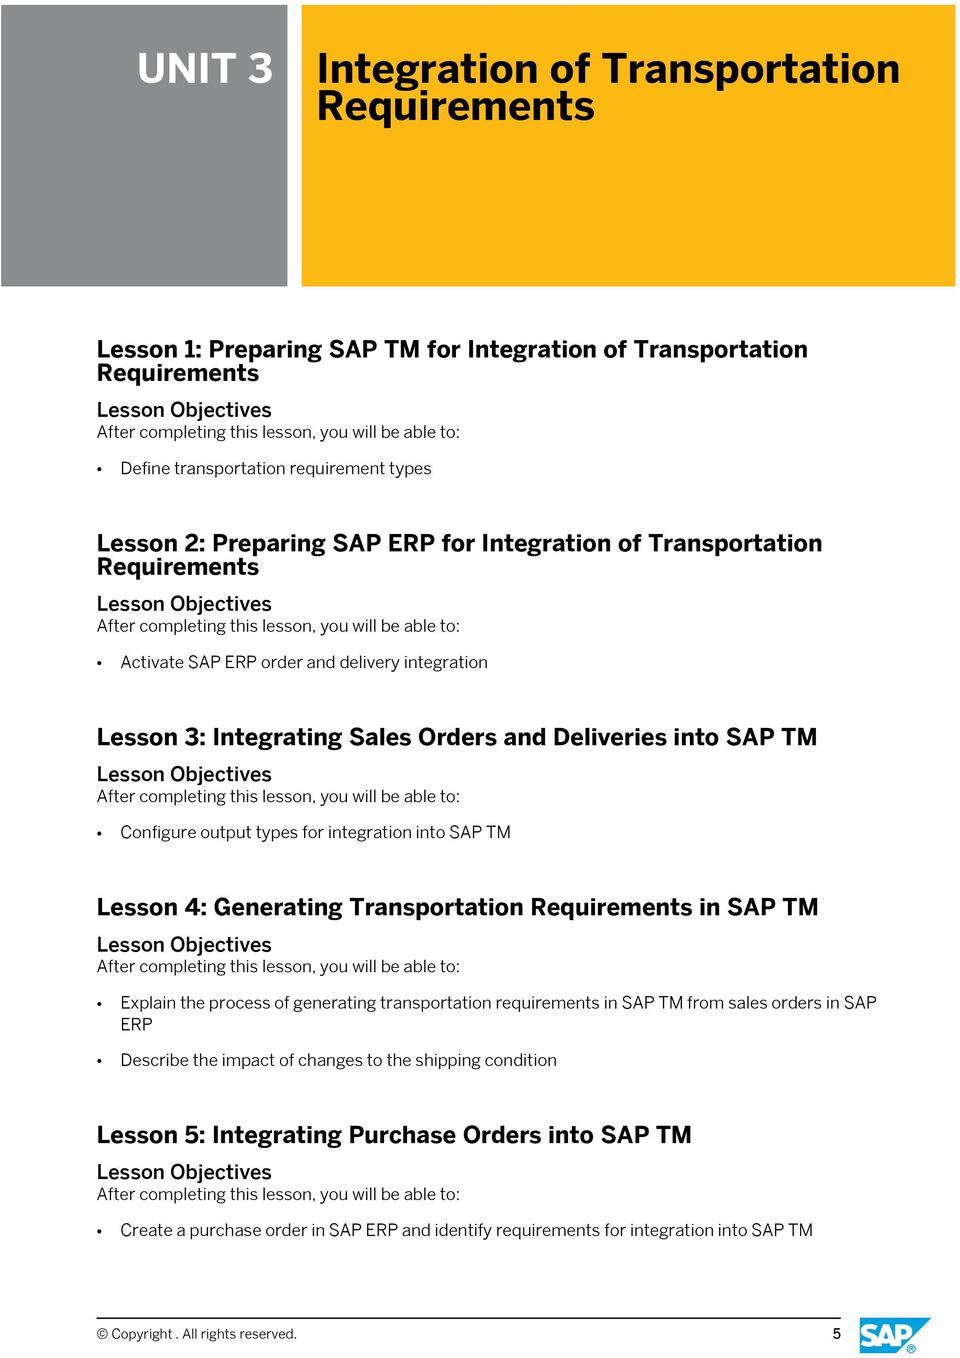 SAP TM Lesson 4: Generating Transportation Requirements in SAP TM Explain the process of generating transportation requirements in SAP TM from sales orders in SAP ERP Describe the impact of changes